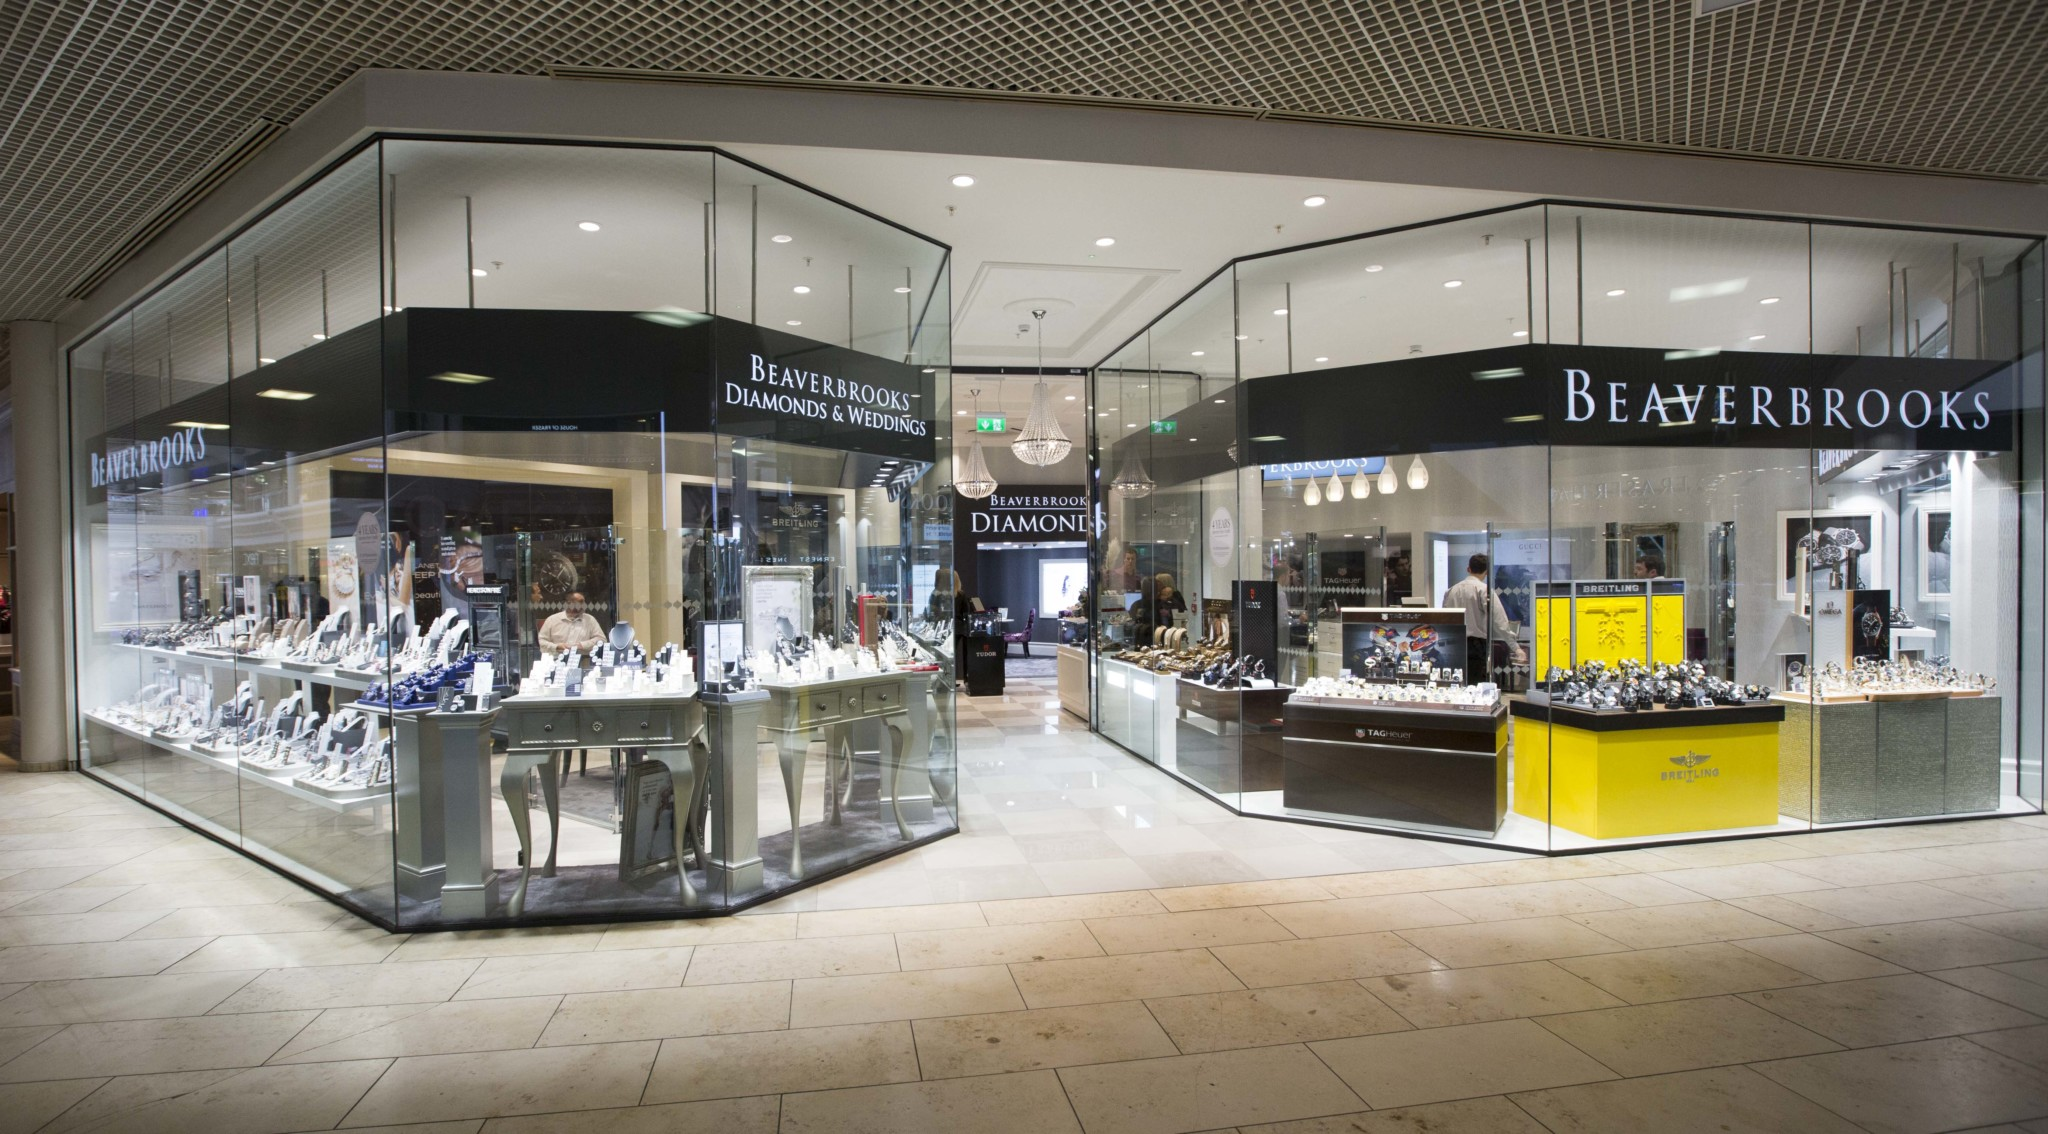 Beaverbrooks in the Milton Keynes MK Centre.